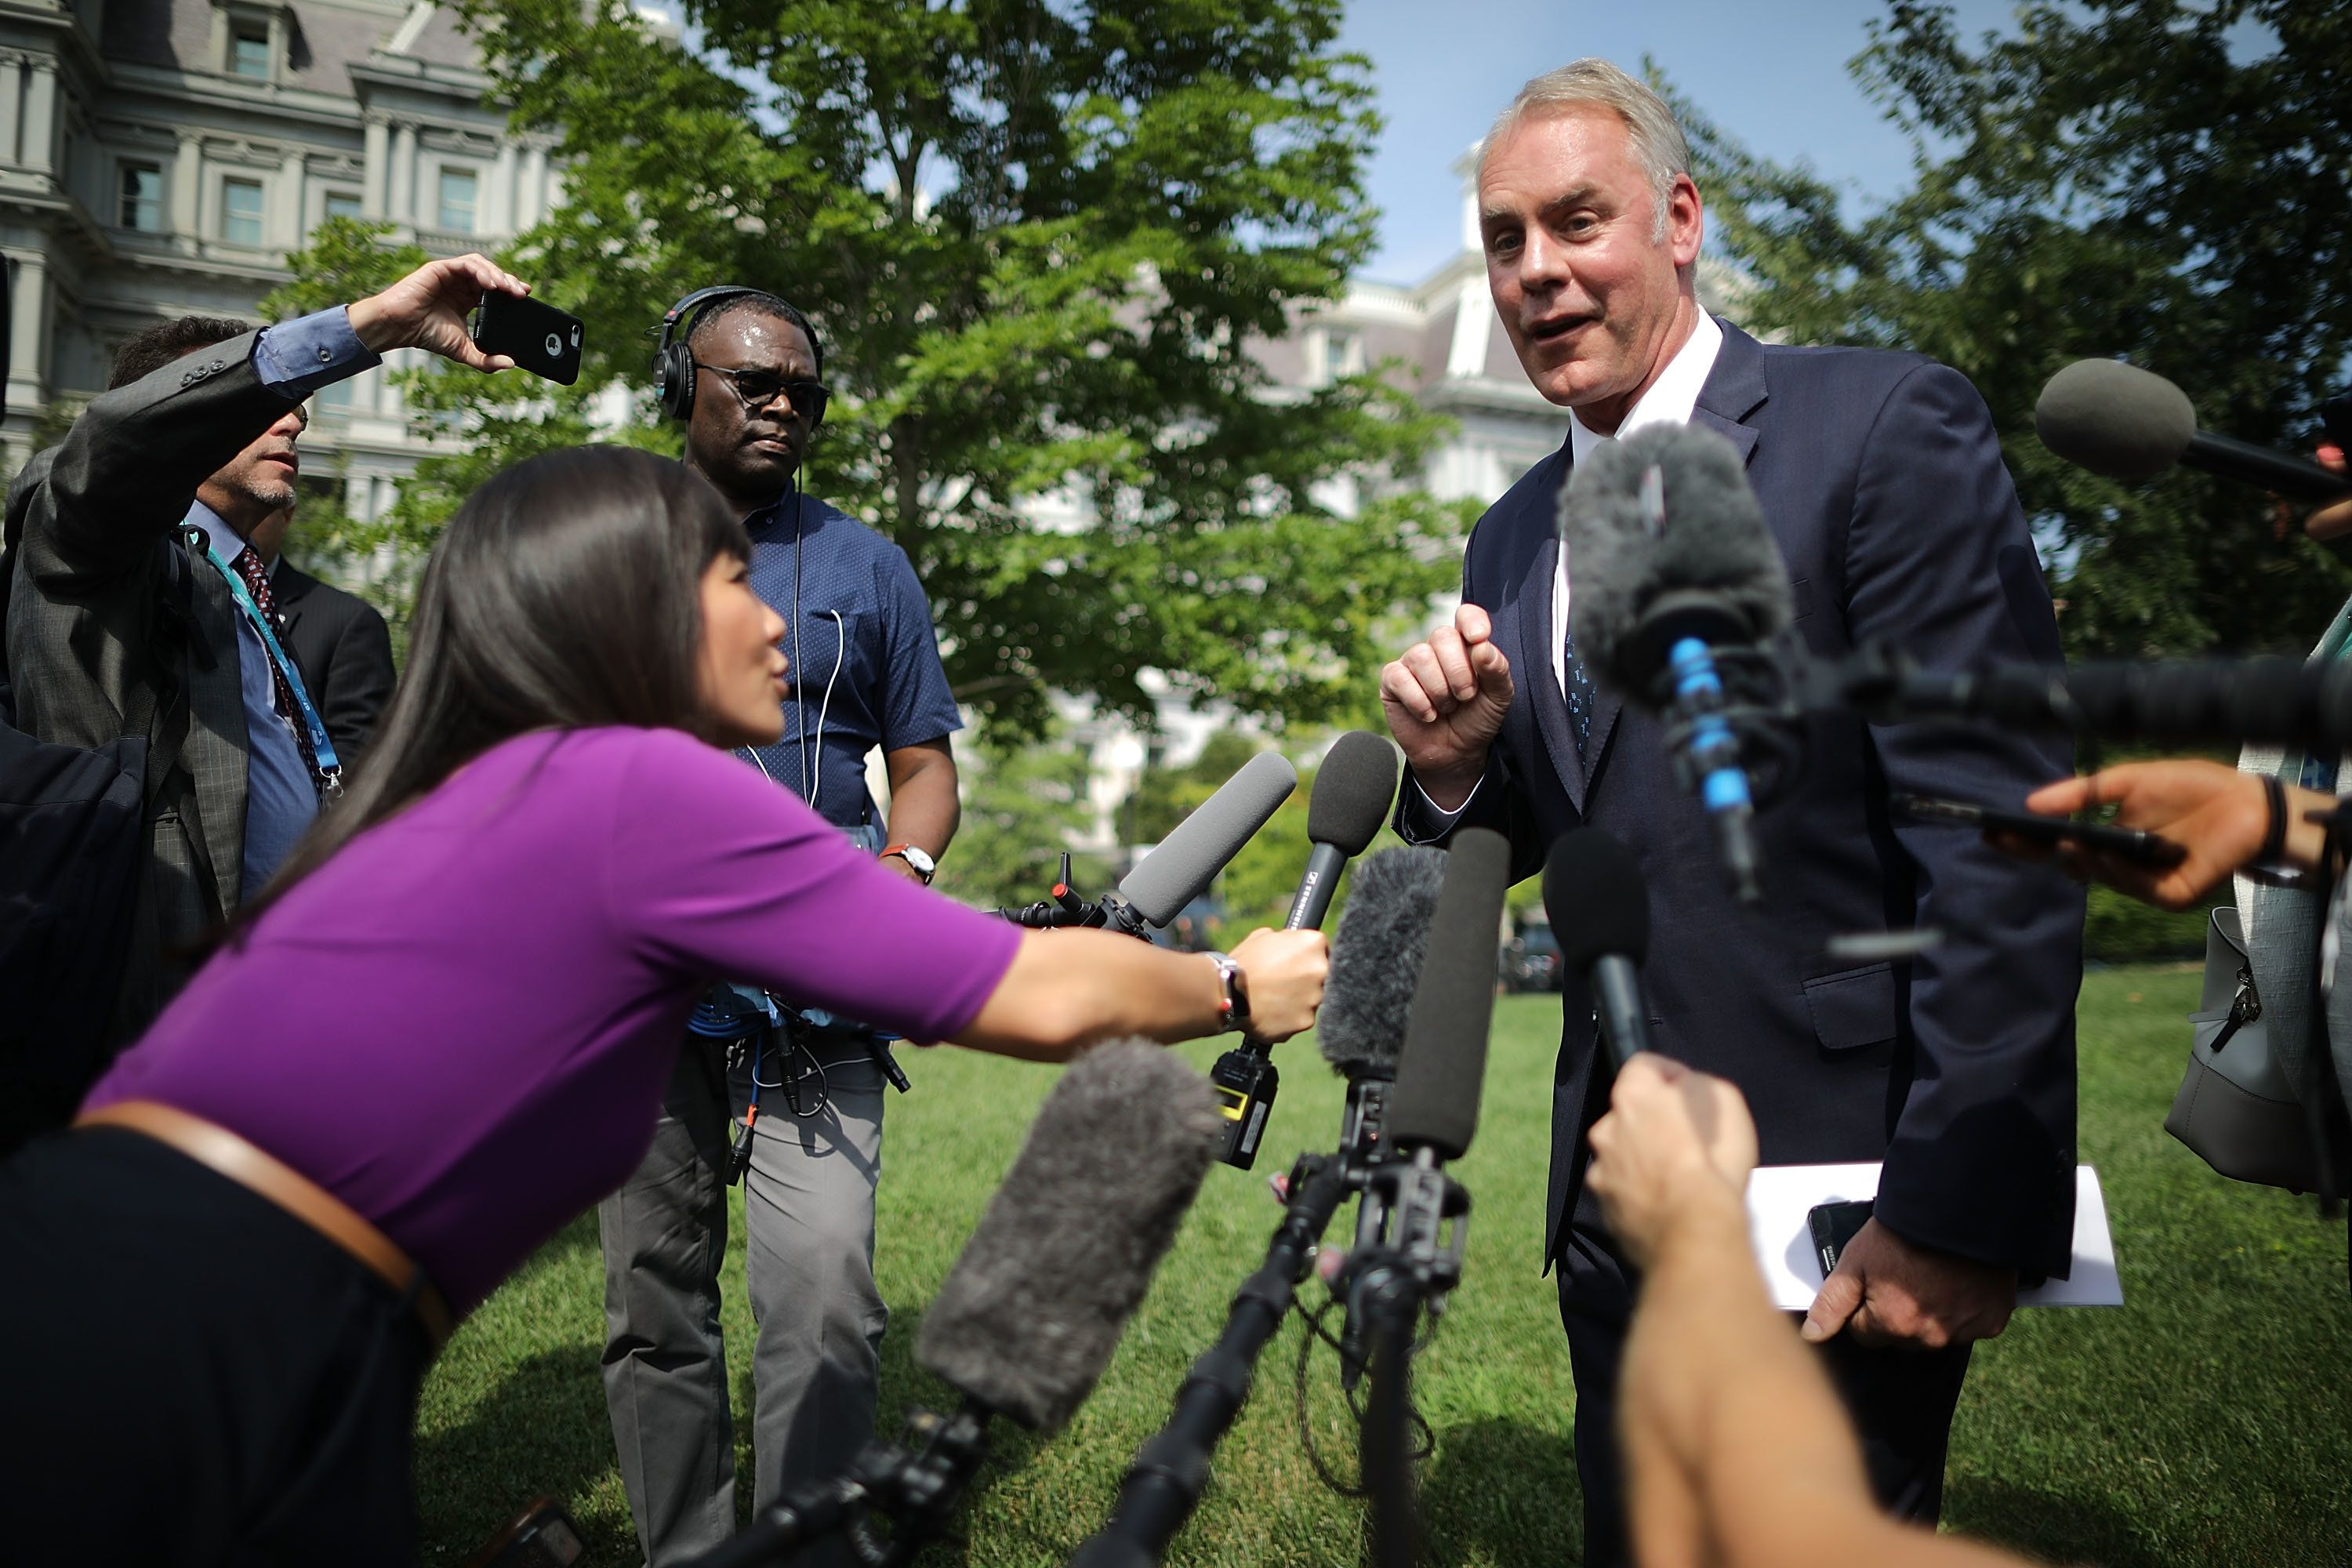 WASHINGTON, DC - AUGUST 16:  Interior Secretary Ryan Zinke talks to journalists outside the White House West Wing before attending a cabinet meeting with President Donald Trump August 16, 2018 in Washington, DC. Zinke said the historic wild fires in the west are caused by mismanaged public lands and 'environmental terrorists groups' that work to prevent logging and clearing dead trees and debris that fuel fires.   (Photo by Chip Somodevilla/Getty Images)